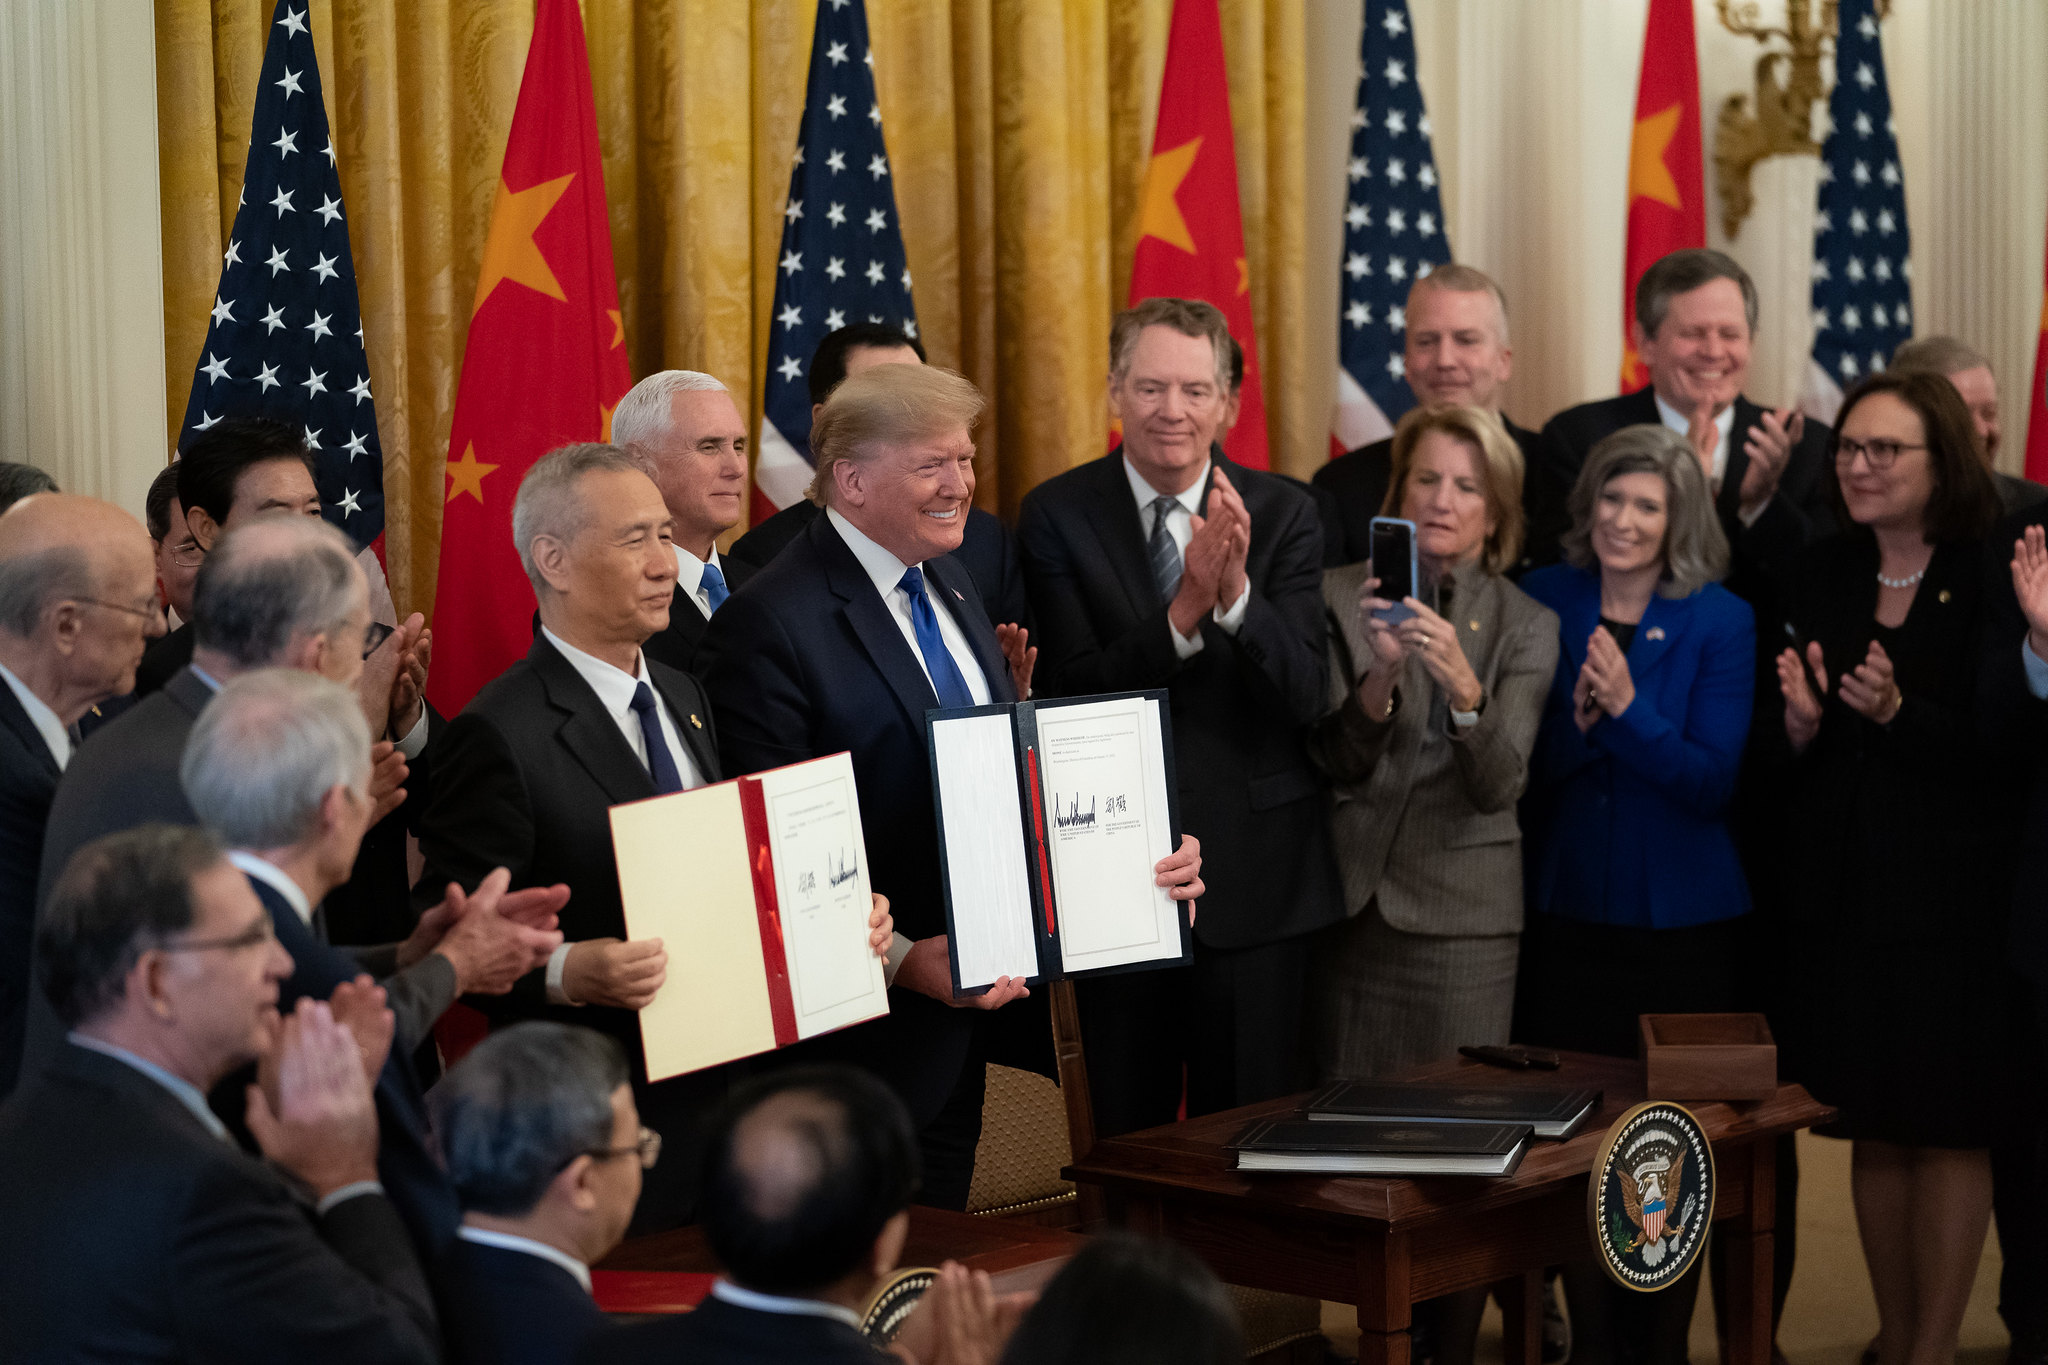 Photo: President Donald J. Trump, joined by Chinese Vice Premier Liu He, sign the U.S. China Phase One Trade Agreement Wednesday, Jan. 15, 2020, in the East Room of the White House. Credit: Official White House Photo by Tia Dufour